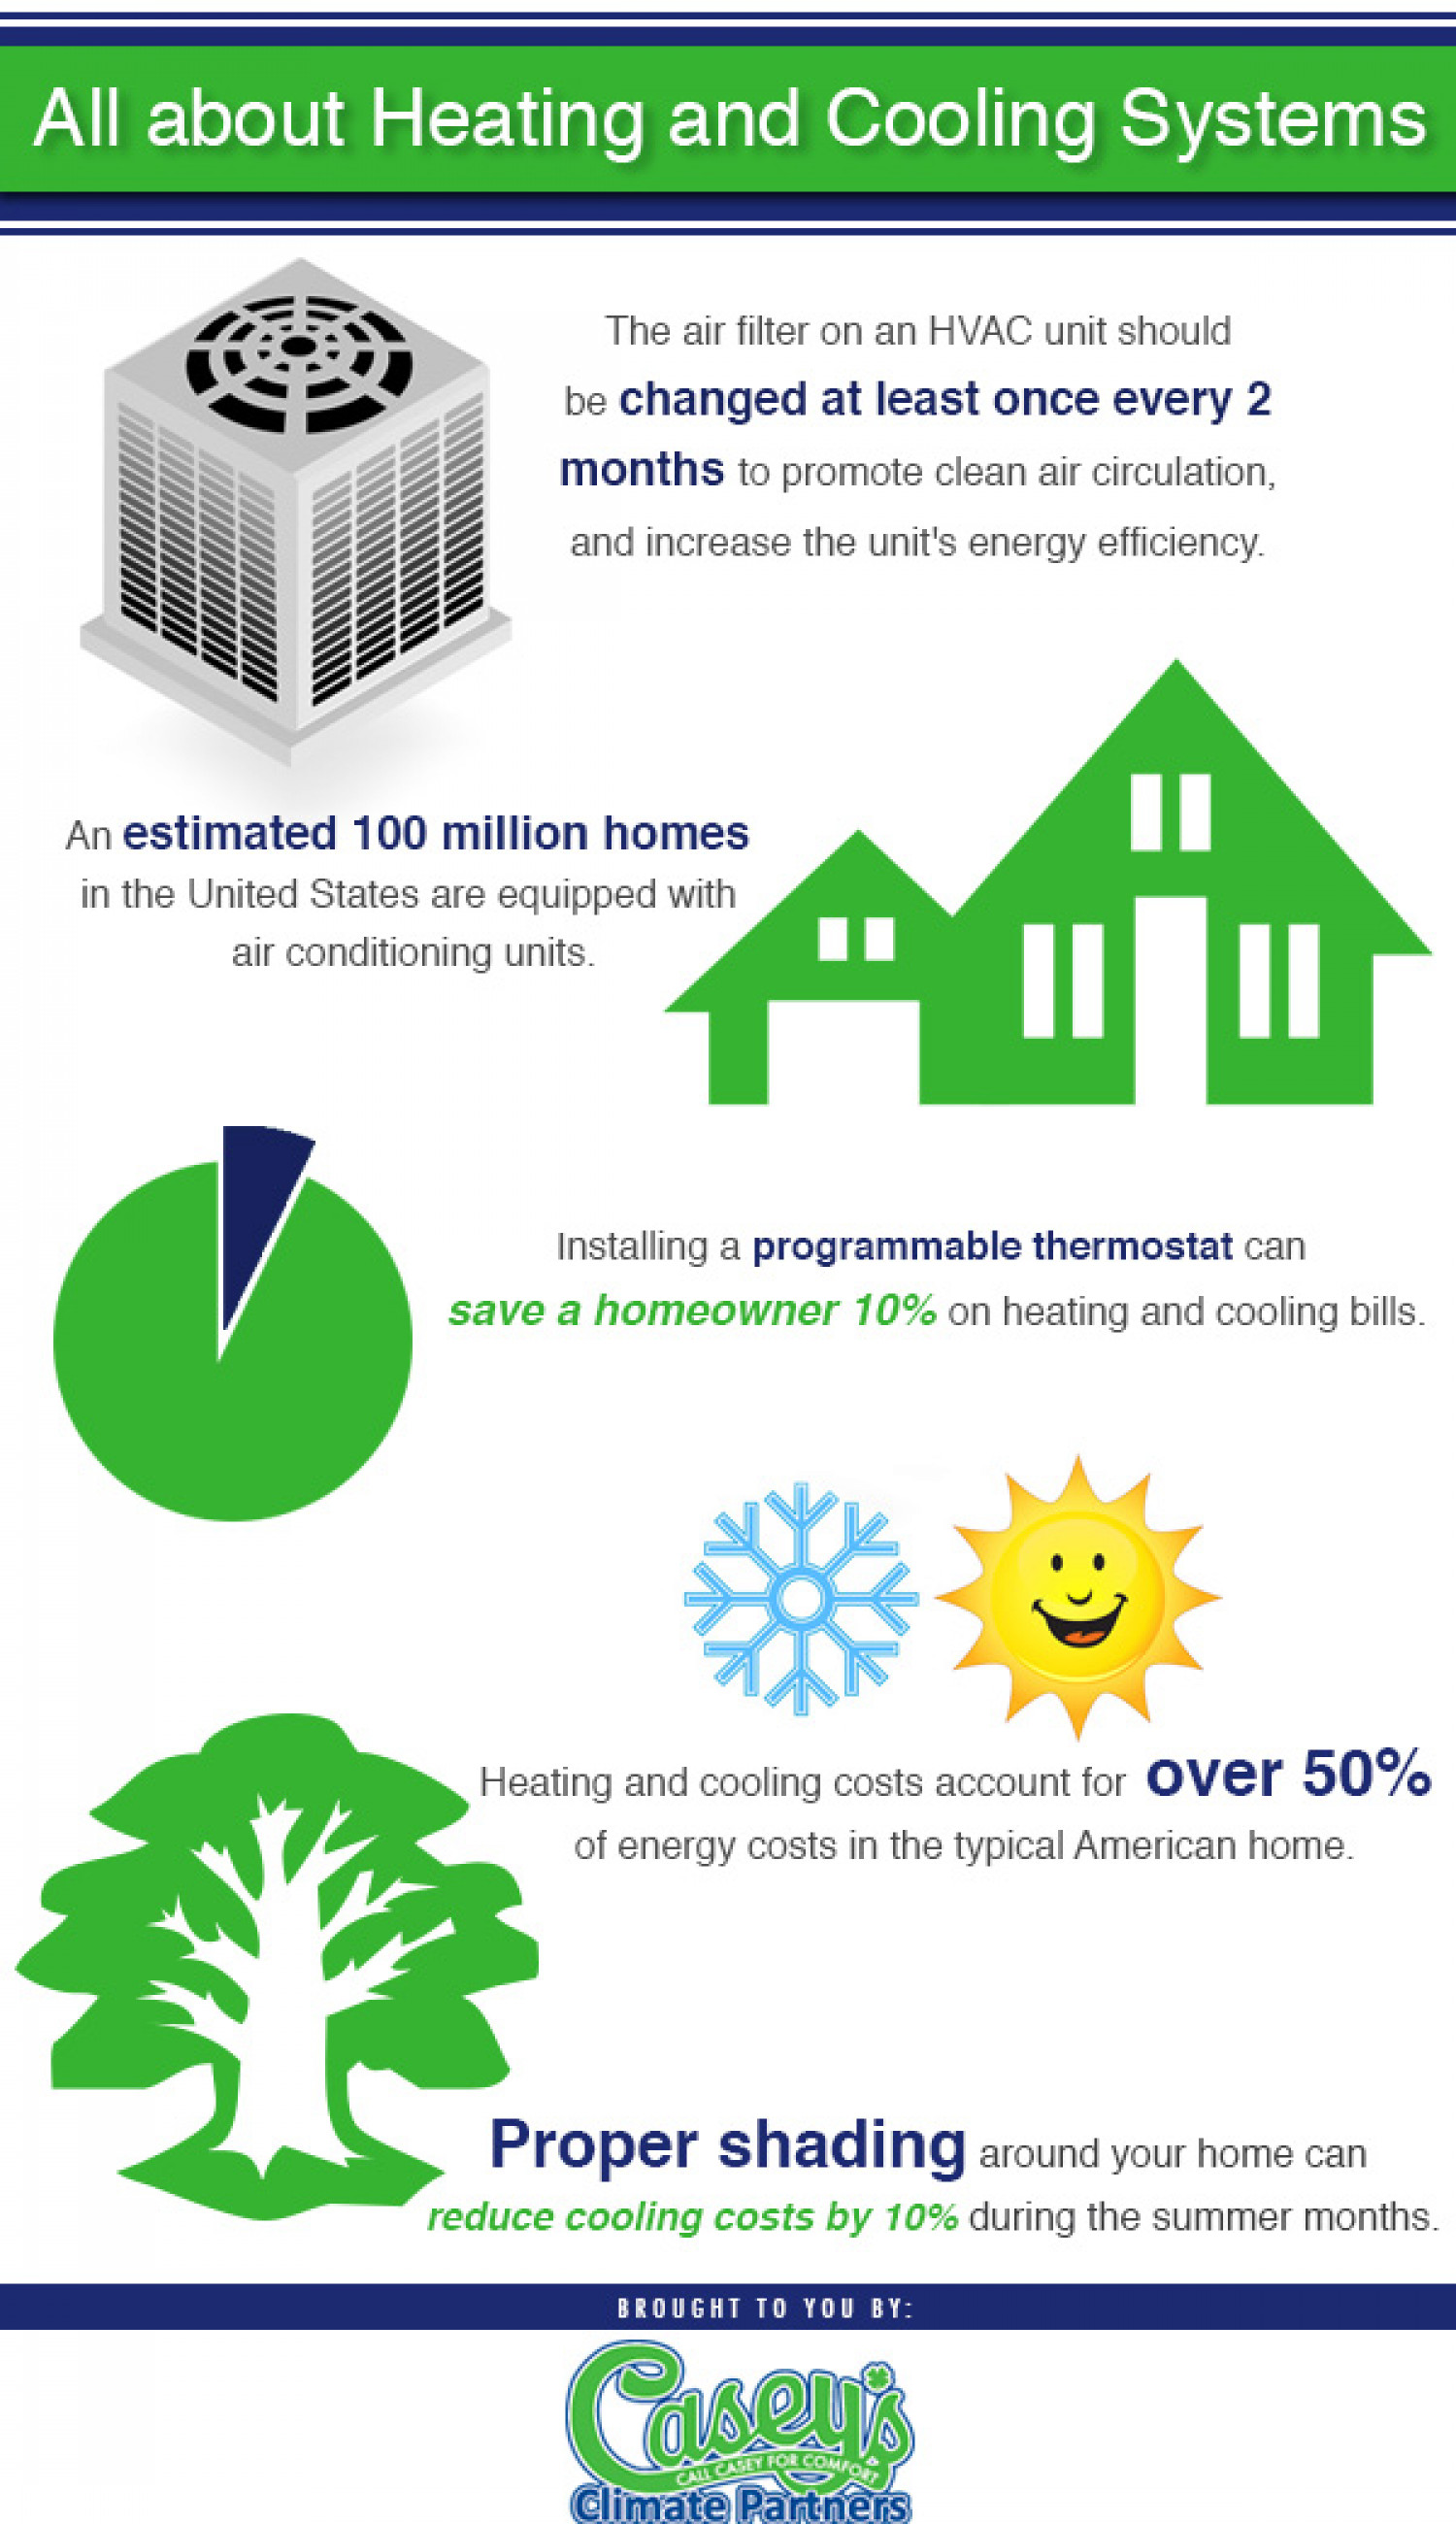 All About Heating and Cooling Sytems Infographic